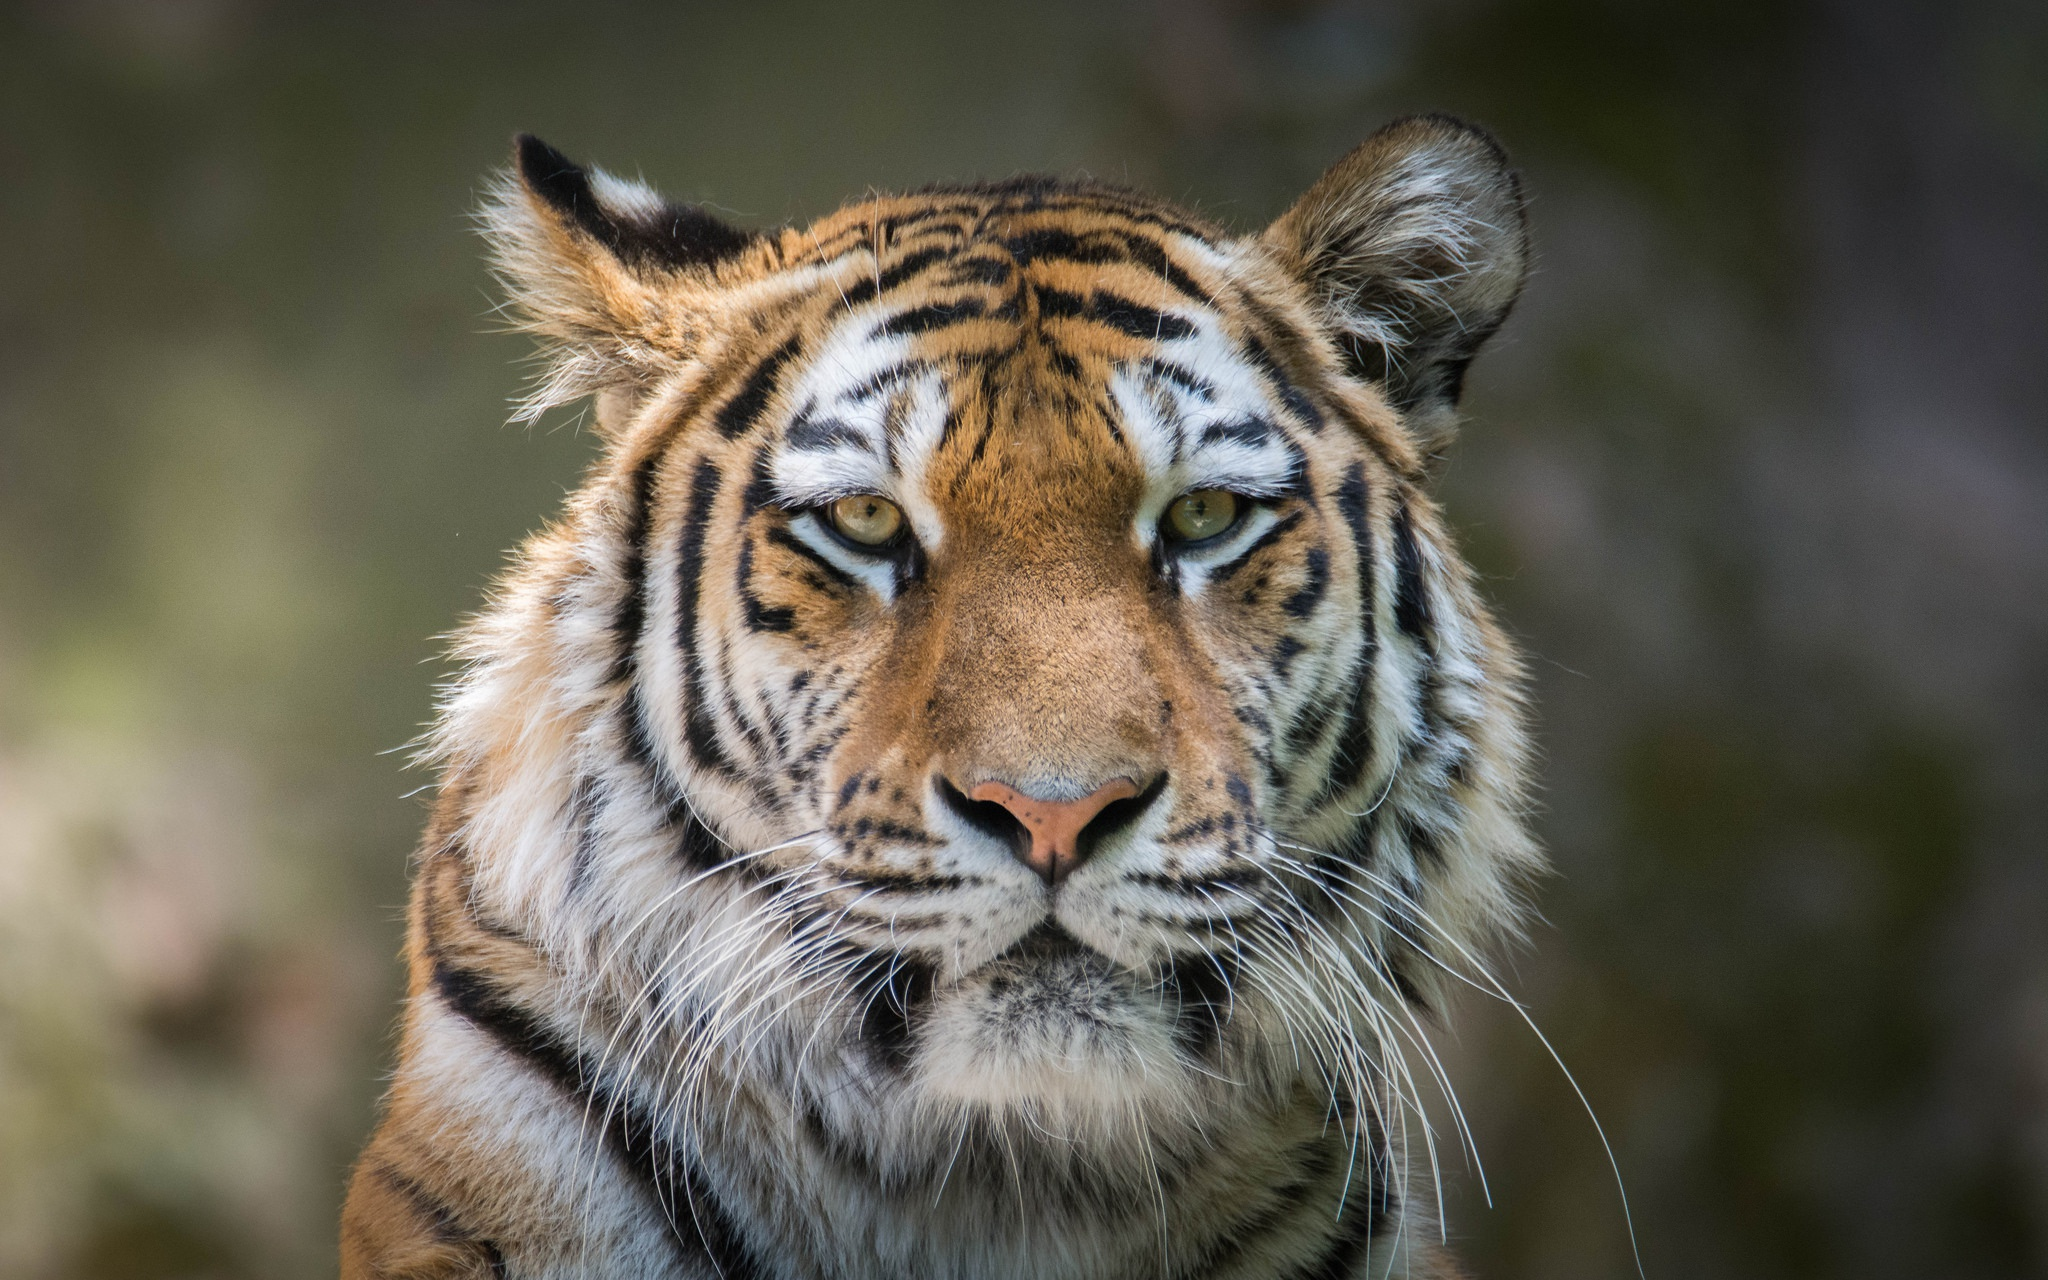 tiger 4k hd hd animals 4k wallpapers images